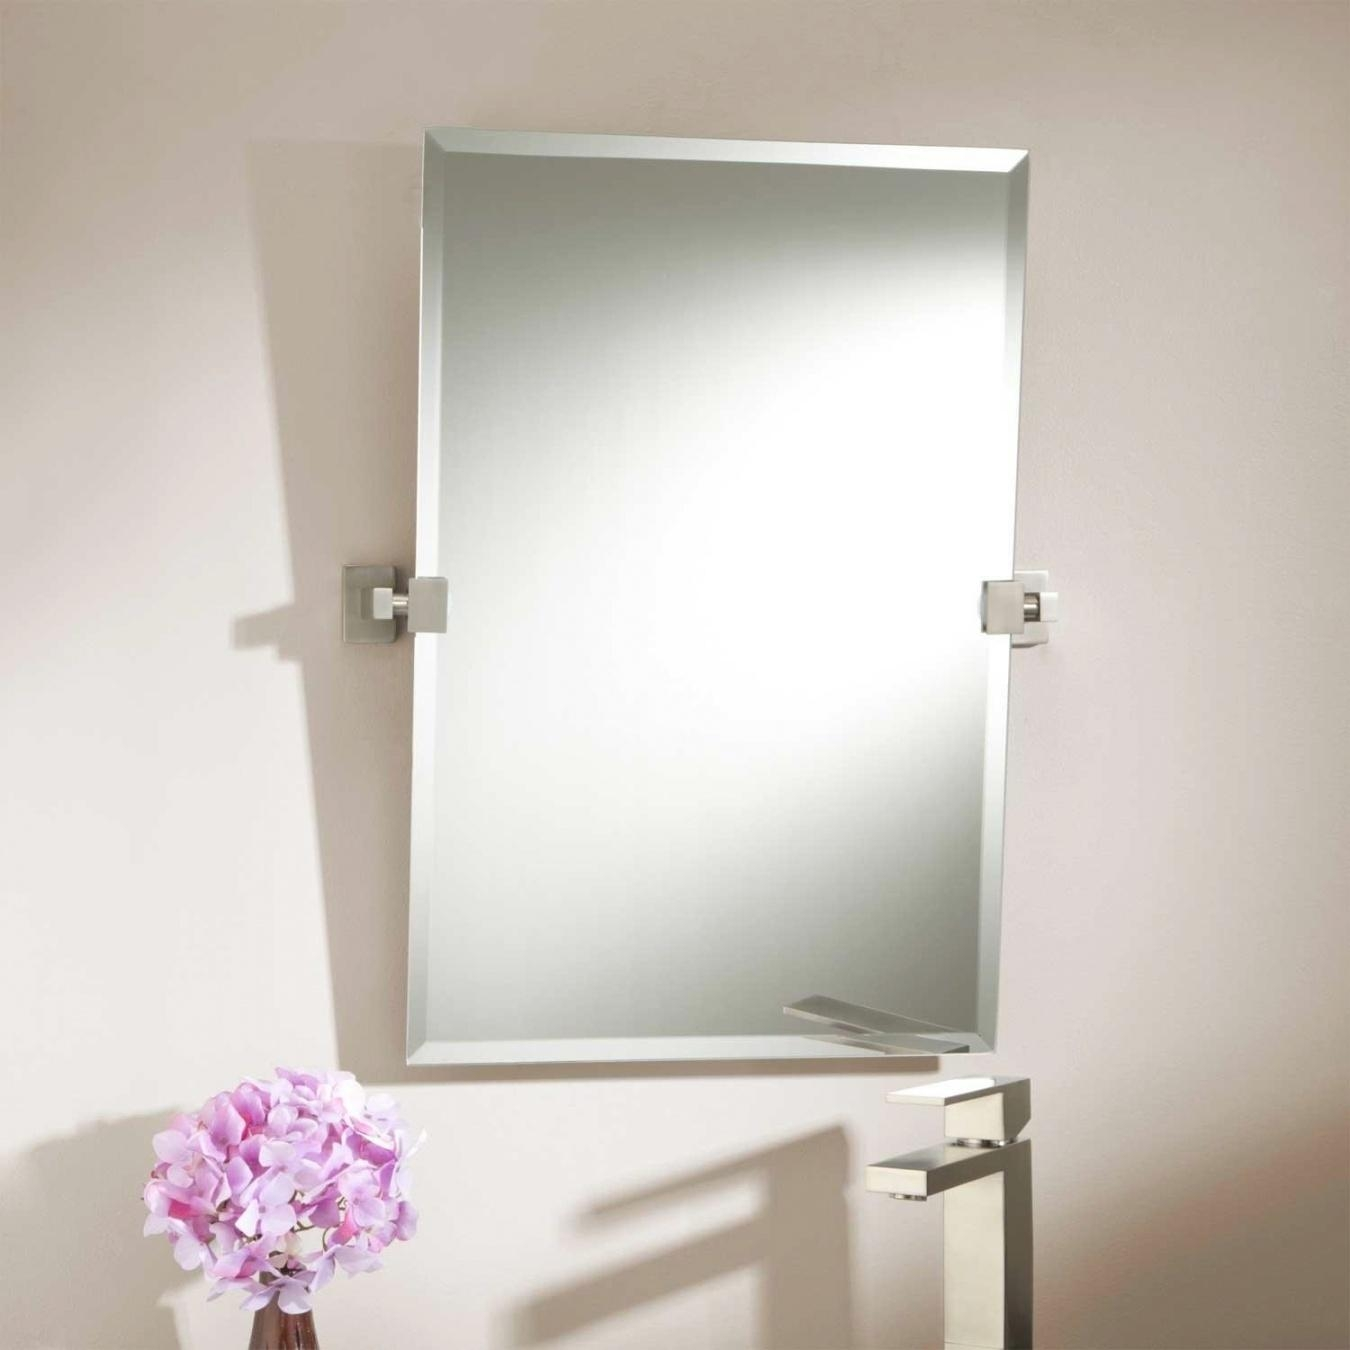 Pivot Mirrors For Bathroom – Inspiration Bathroom Throughout Pivot Mirrors For Bathroom (View 4 of 20)